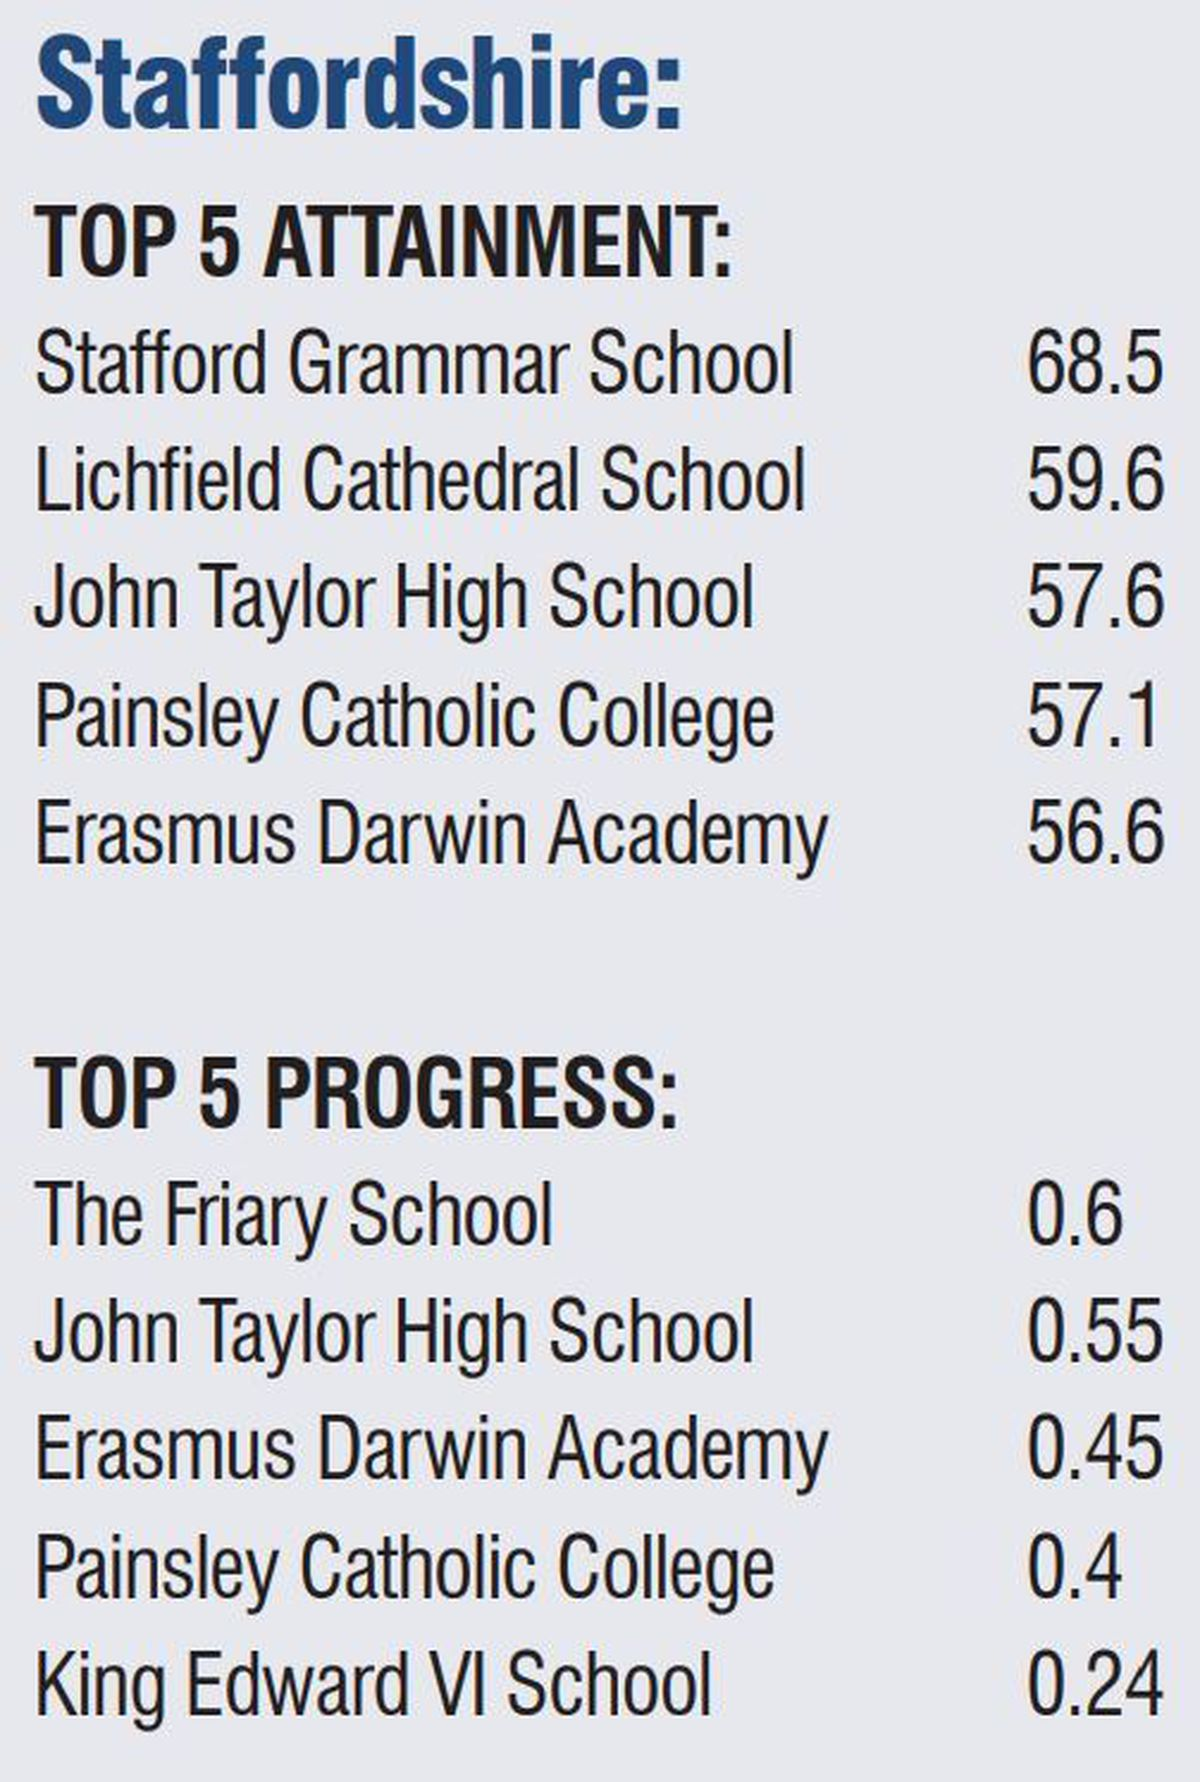 Staffordshire schools top five in our region for attainment and progress